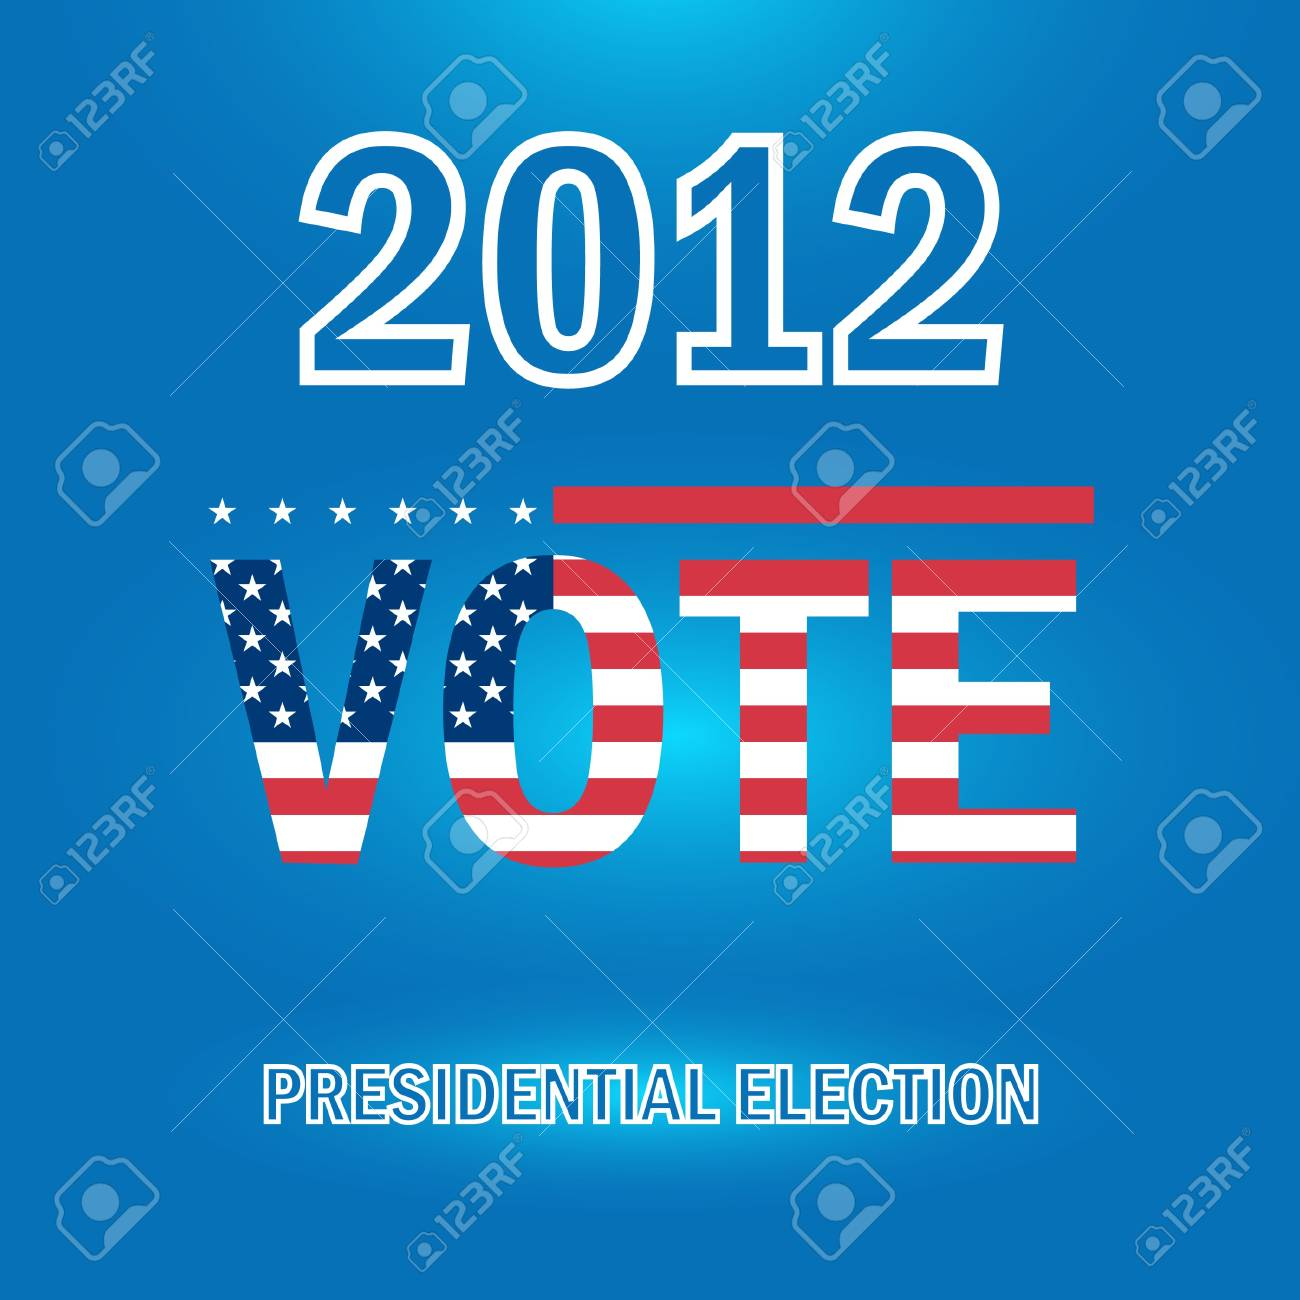 United States Presidential Election in 2012 Stock Vector - 15756693